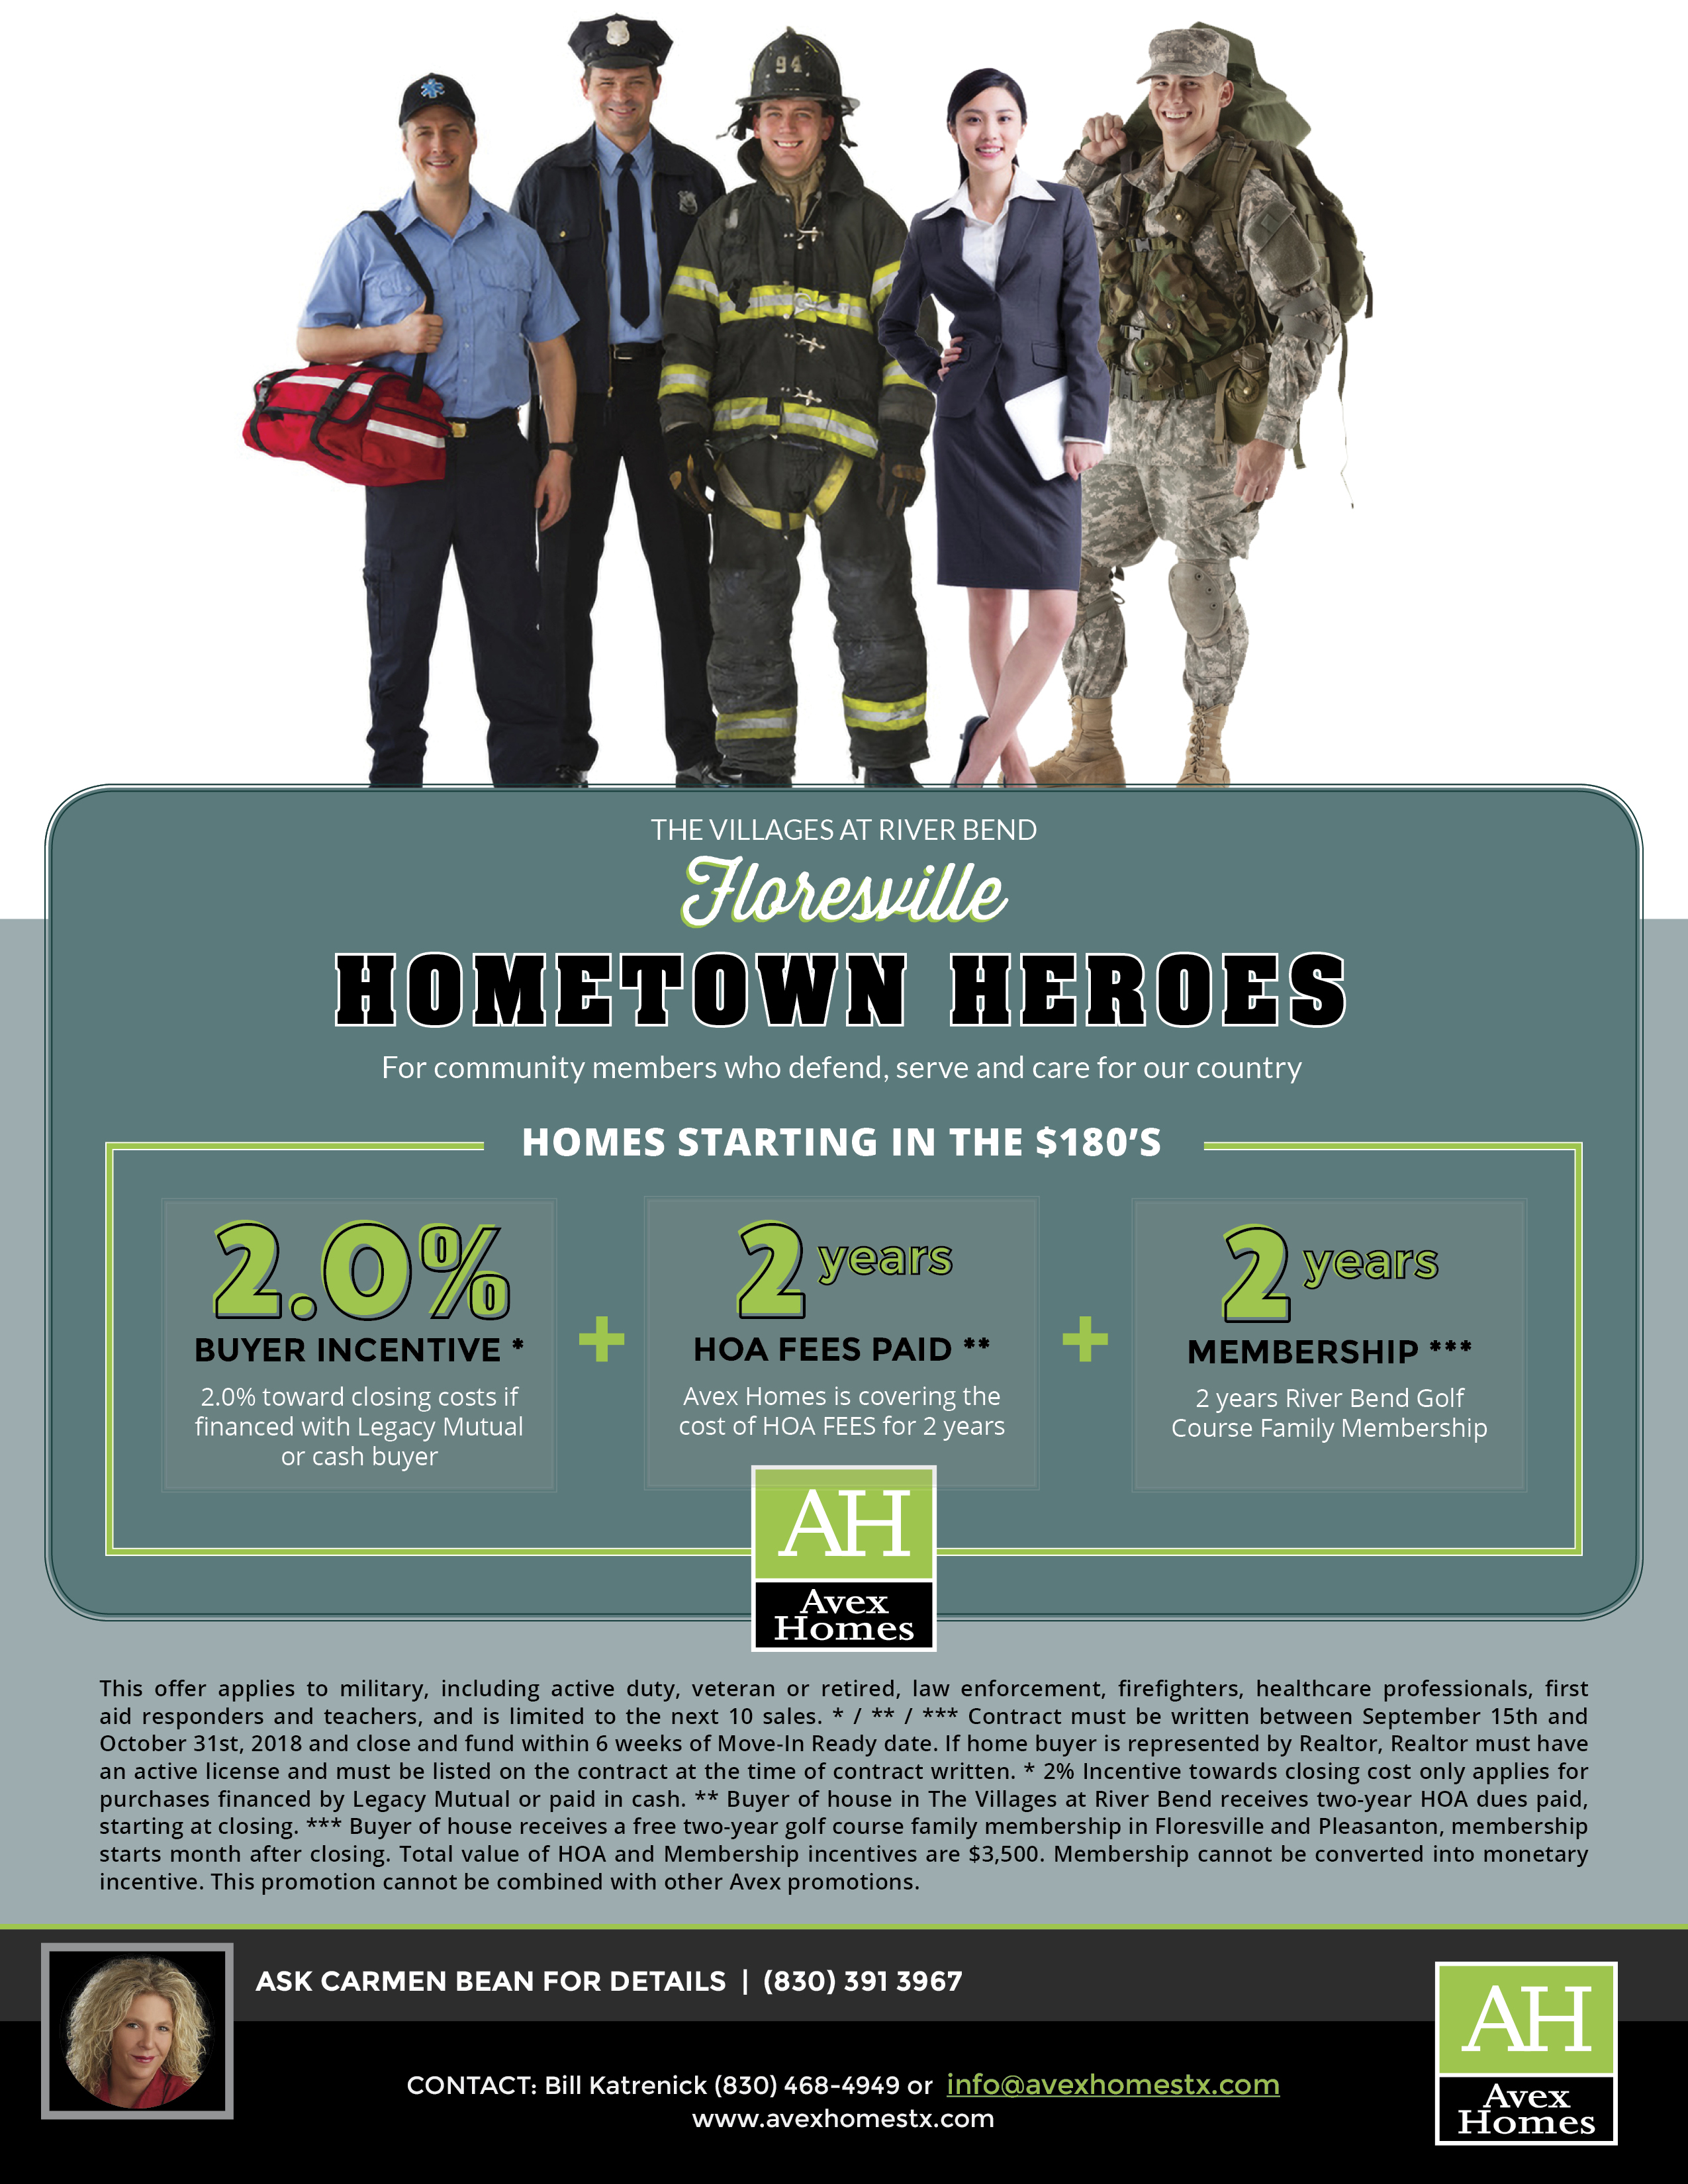 Avex-Hometown-Heroes-Floresville